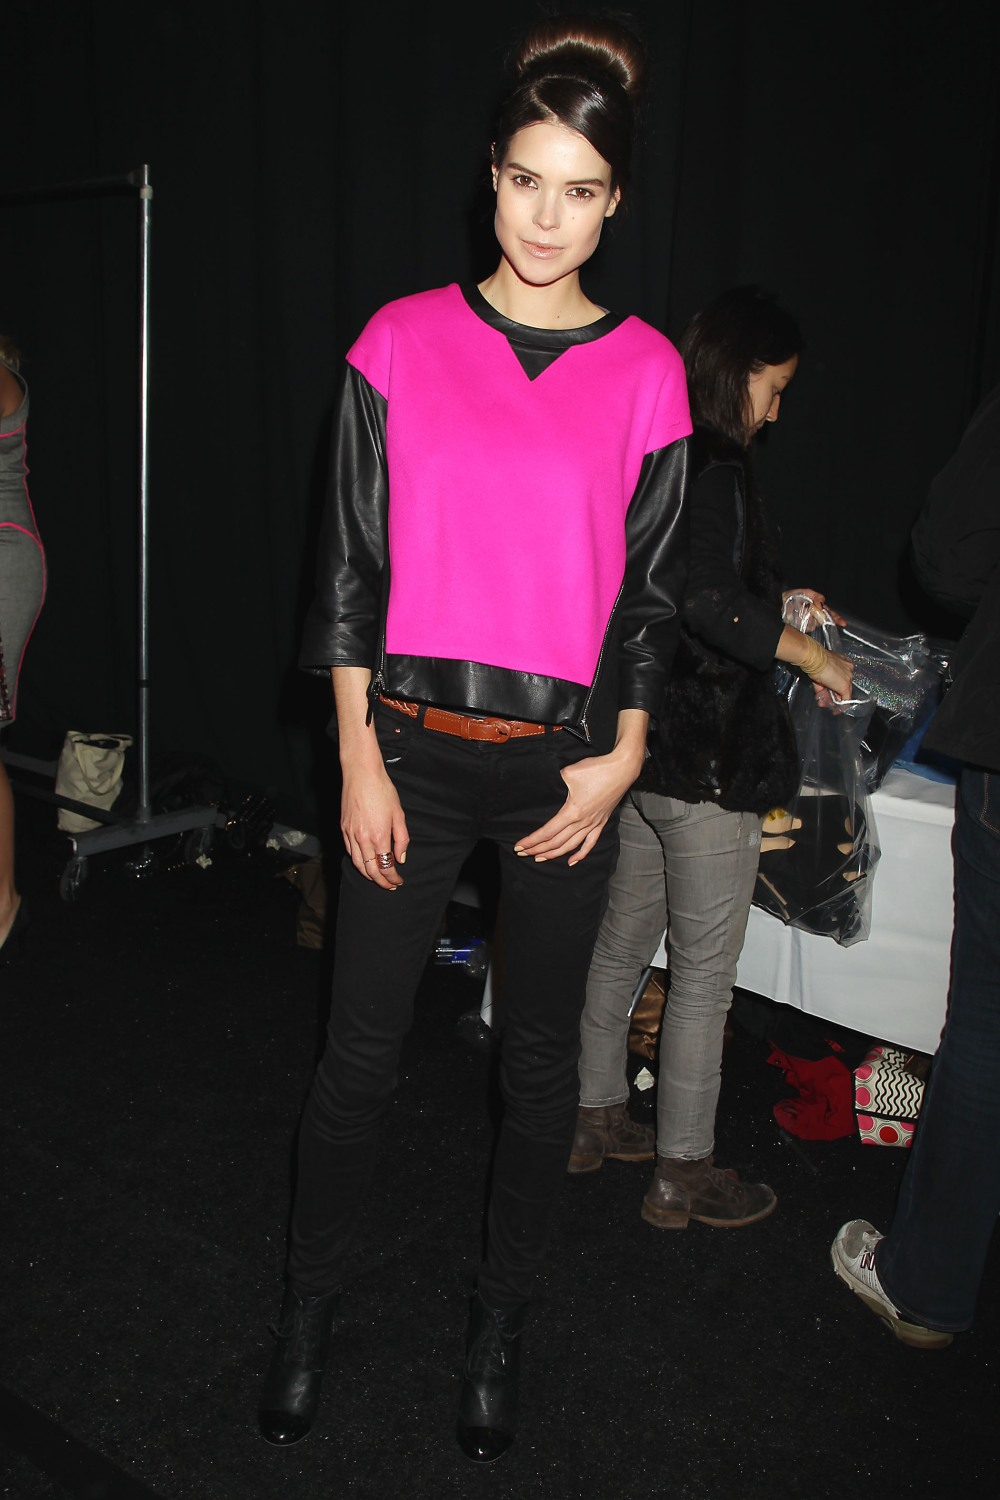 Sarah Macklin at The MILLY fashion show for NYFW 2013